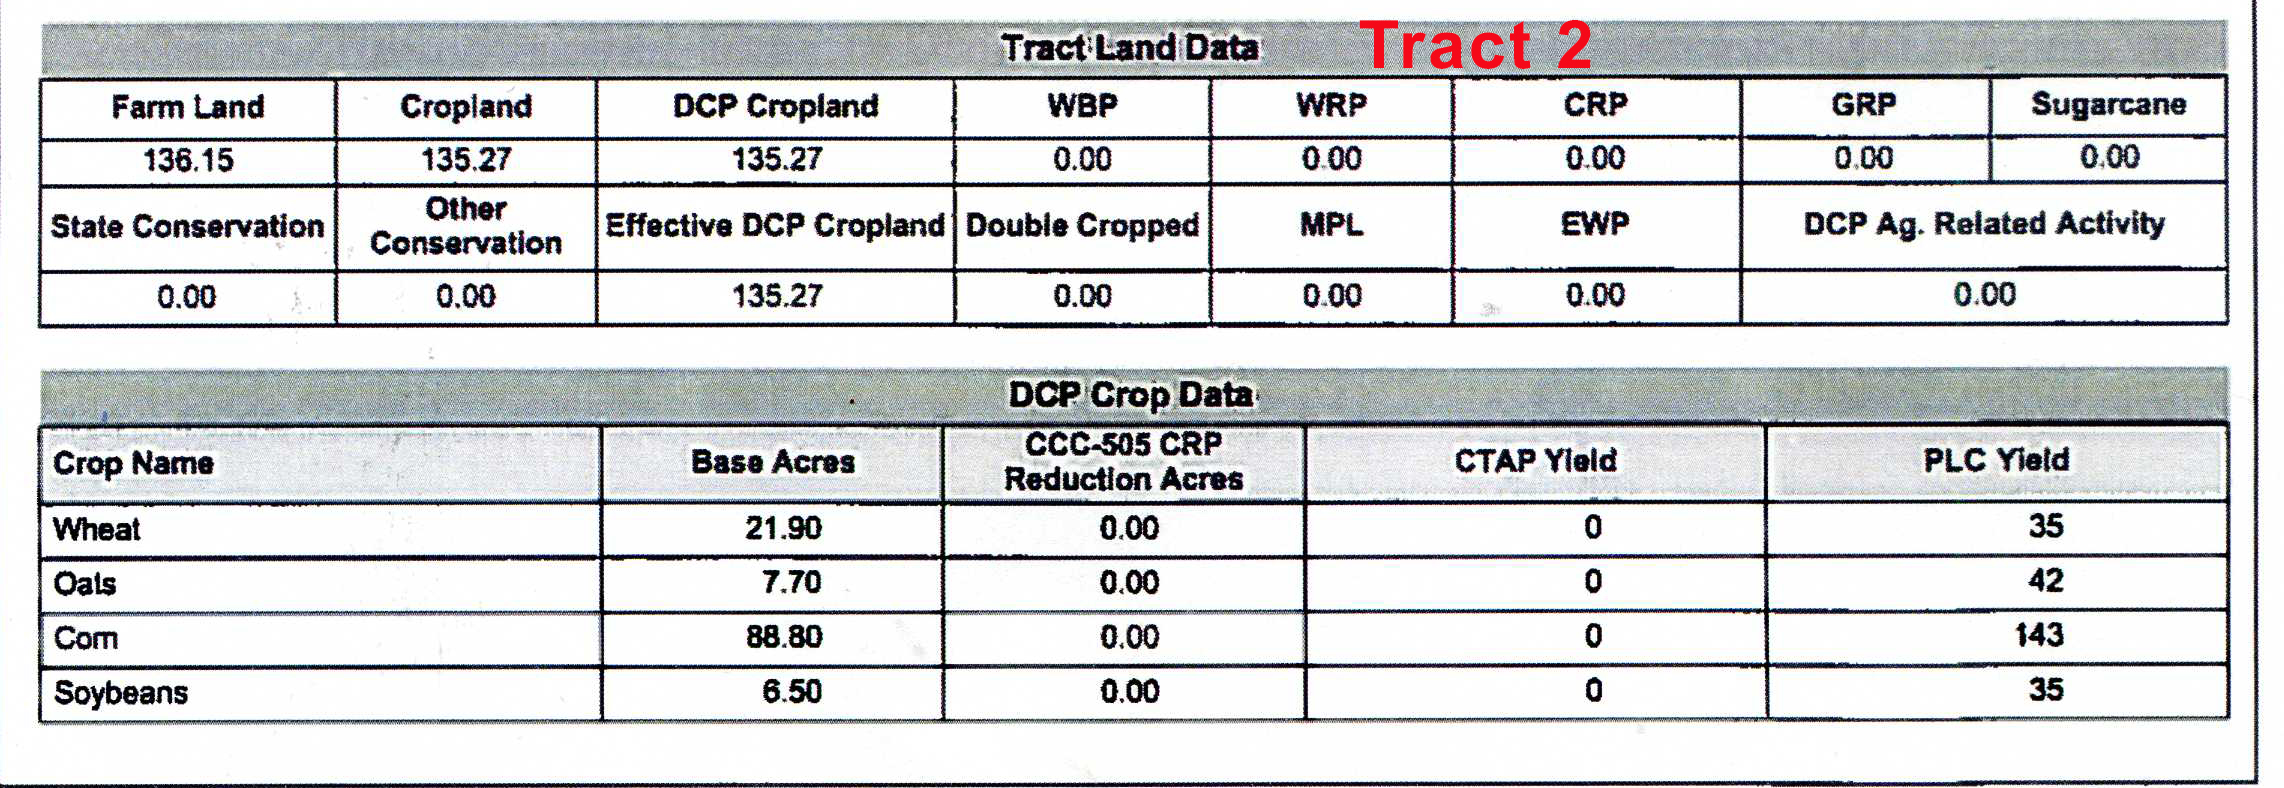 Crop Tract 2